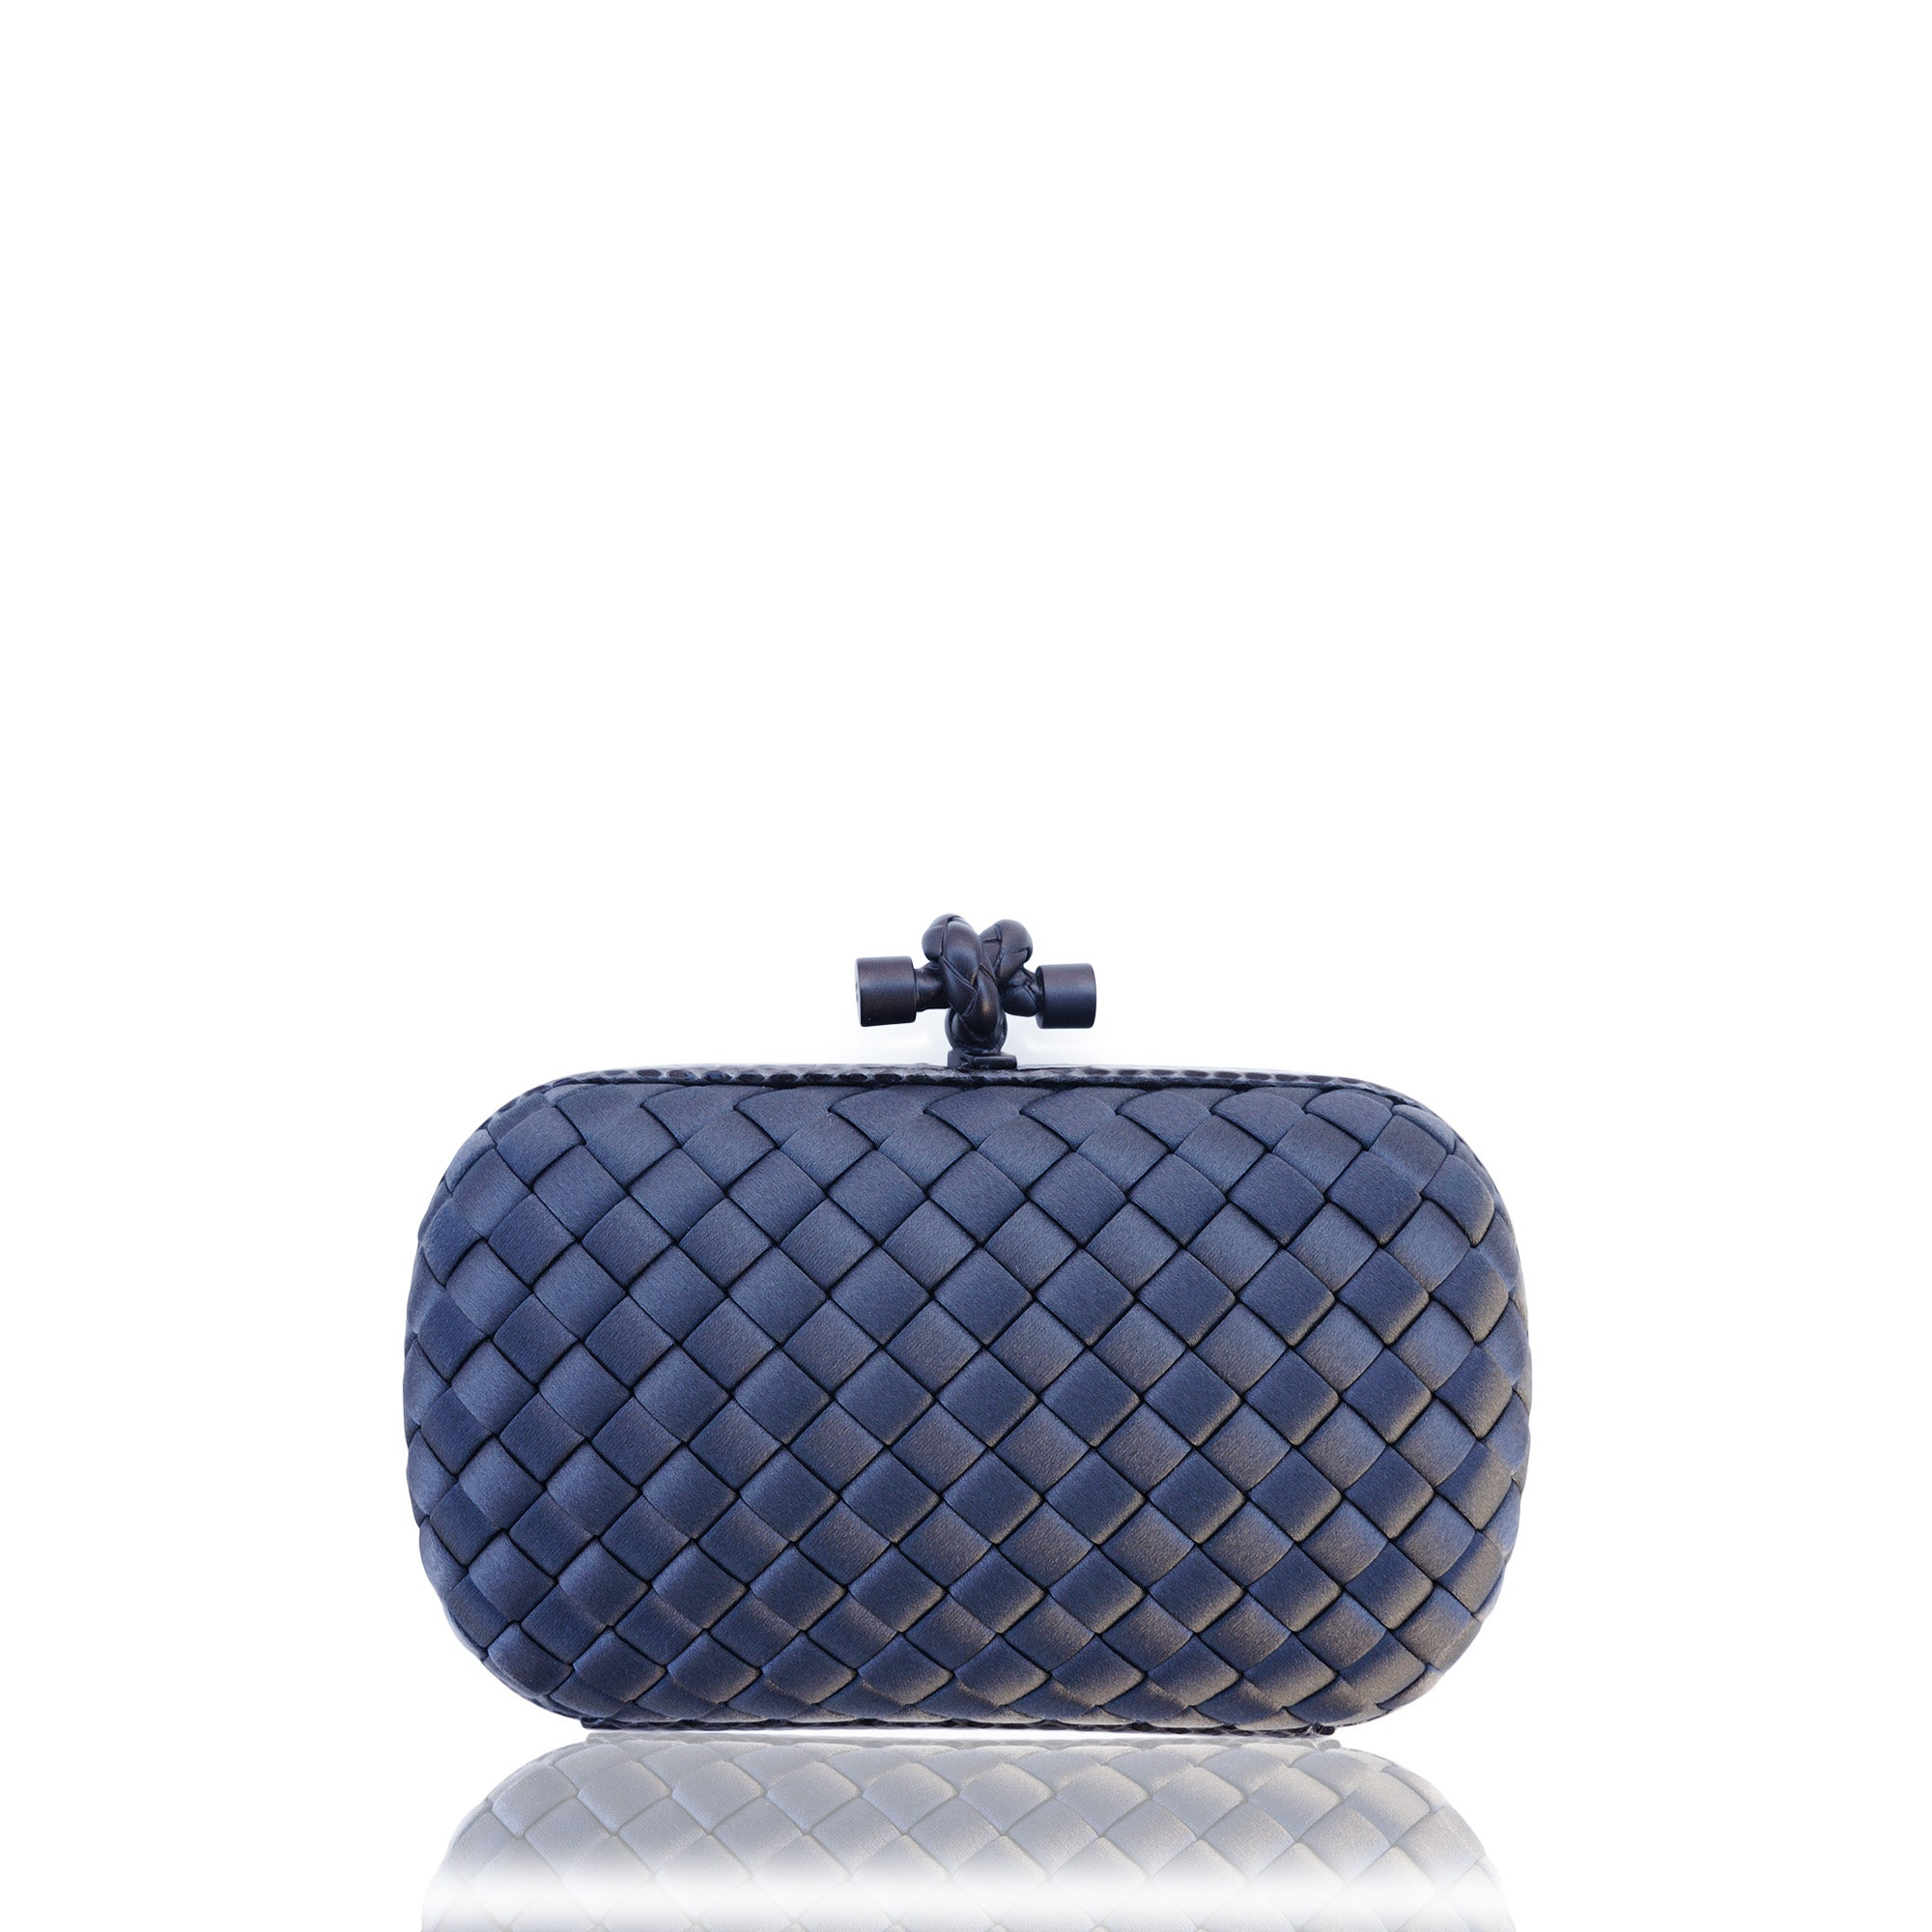 b0165e60b2 BOTTEGA VENETA INTRECCIATO SATIN KNOT CLUTCH Shop the best value on  authentic designer resale consignment on ...